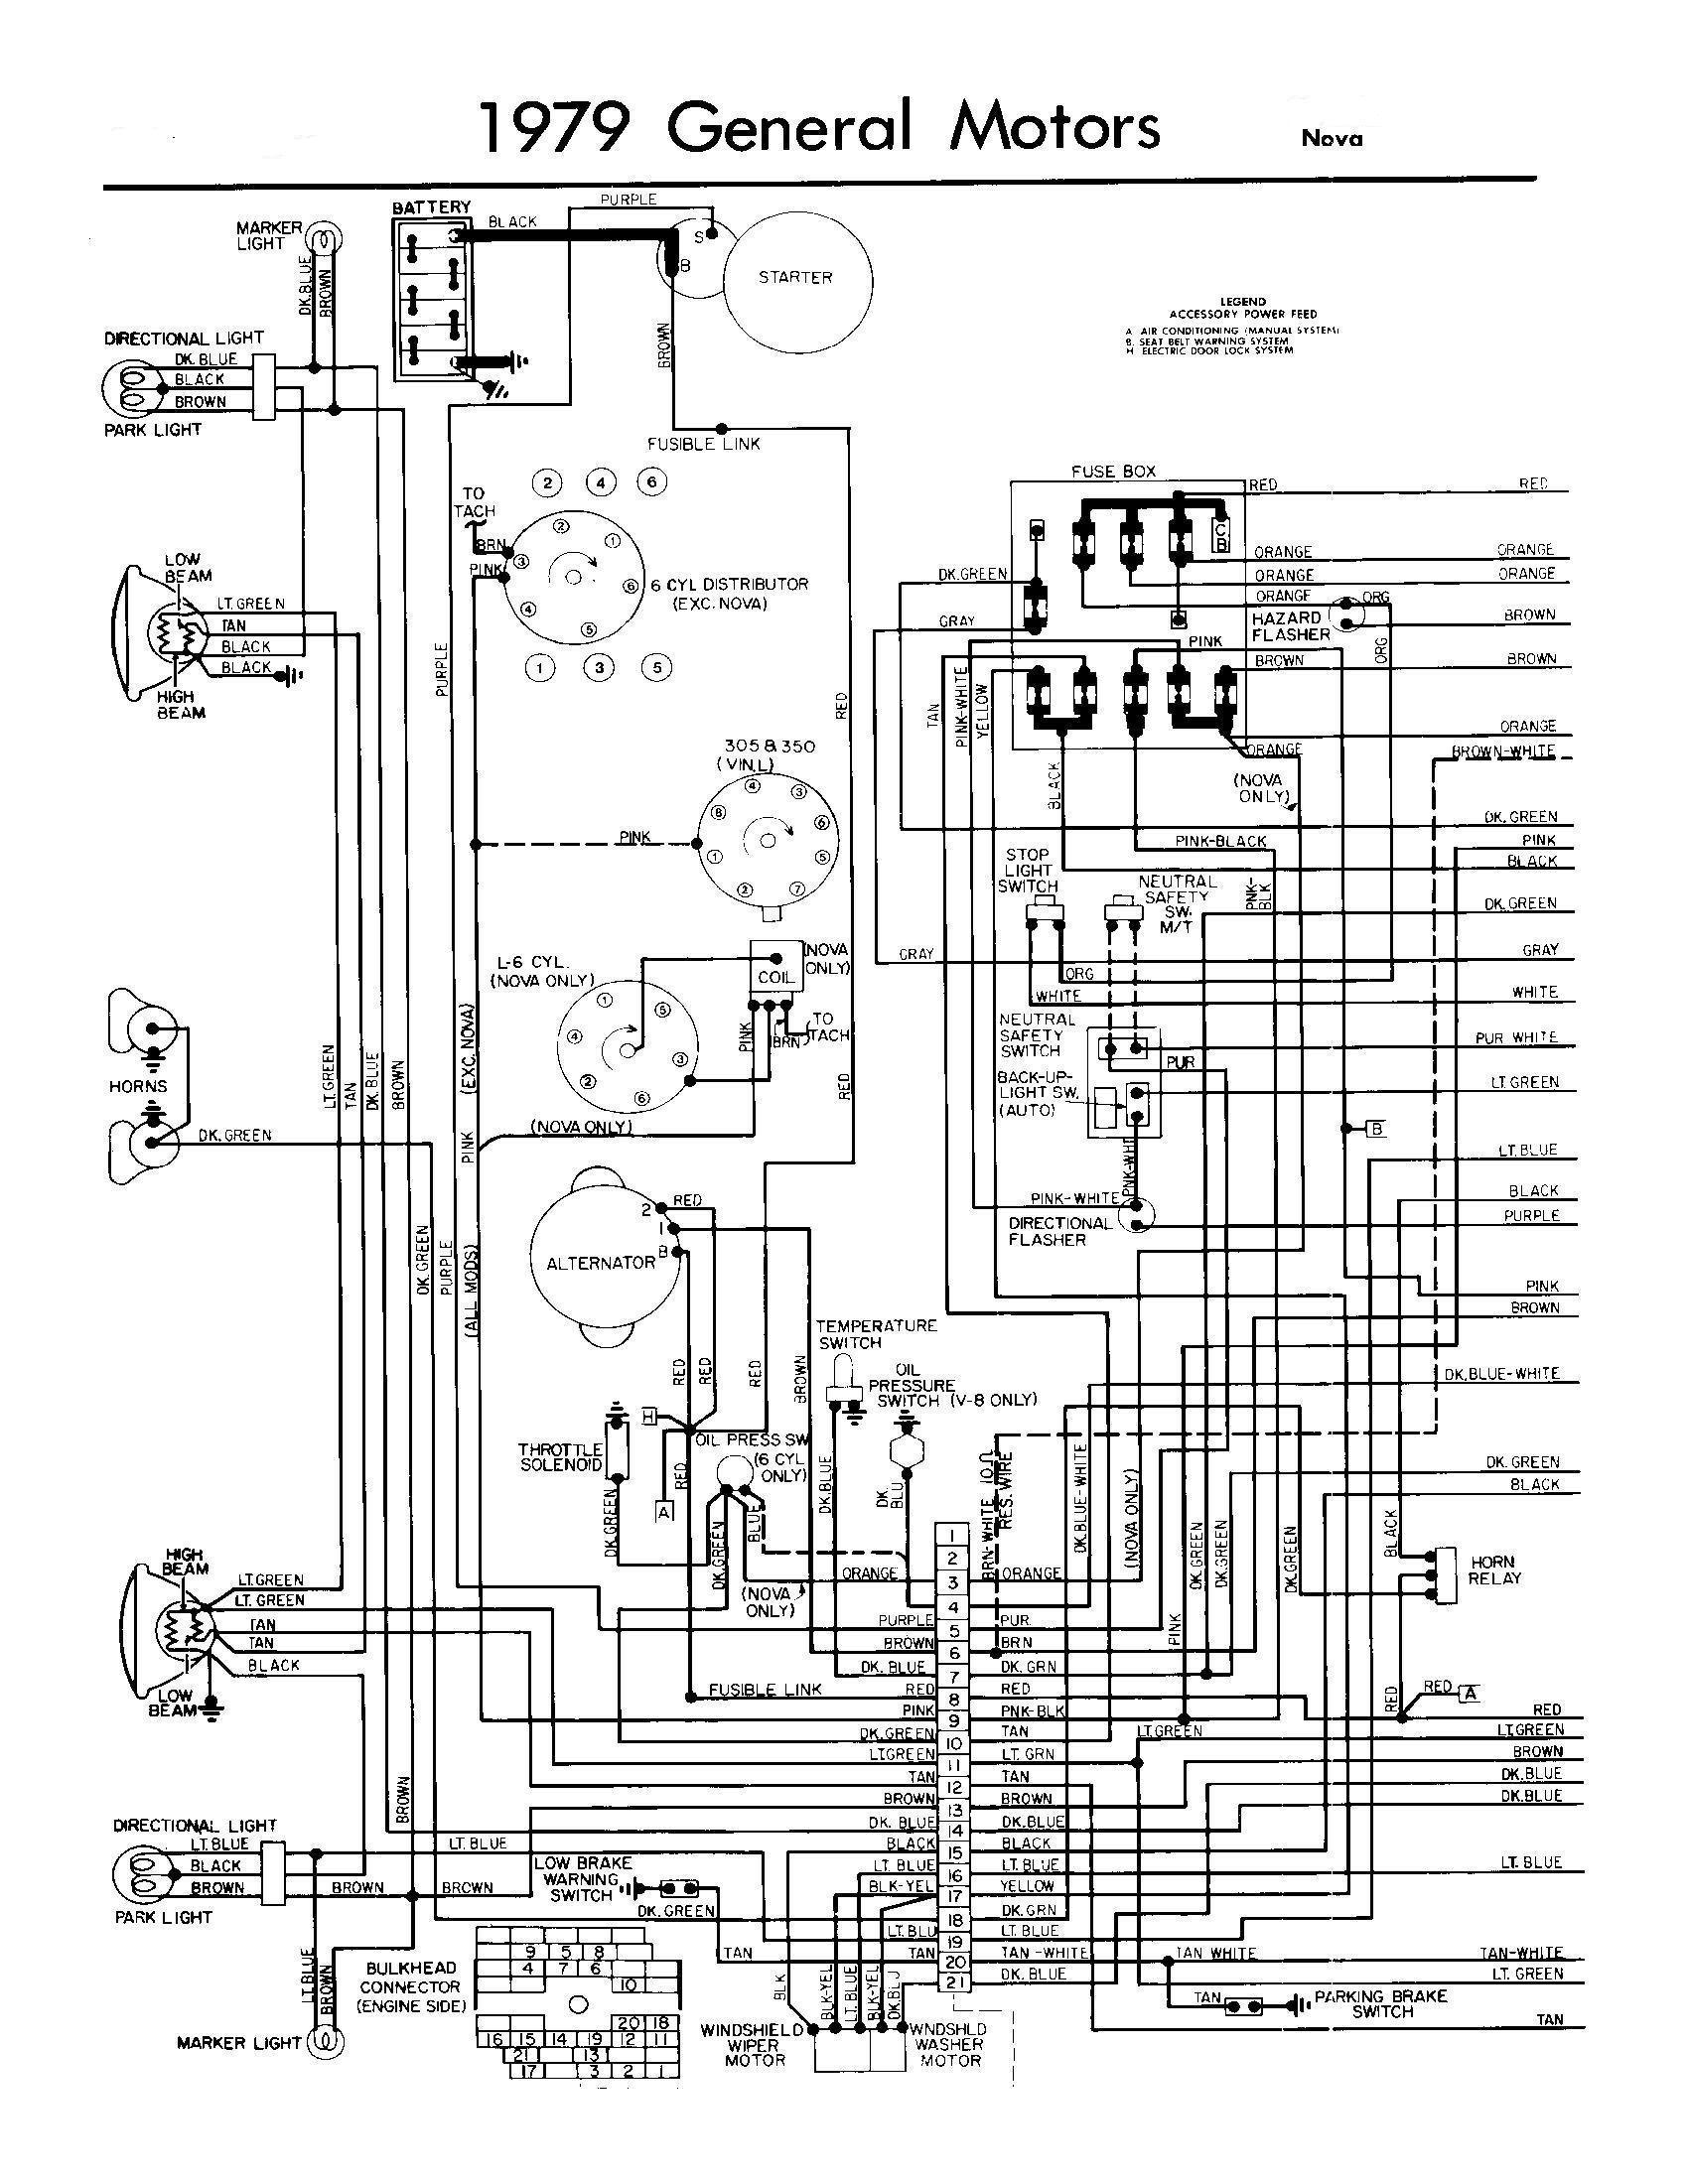 chevy camaro wiring diagram 83 camaro wiring diagrams wiring diagram data 2010 chevy camaro wiring diagram 83 camaro wiring diagrams wiring